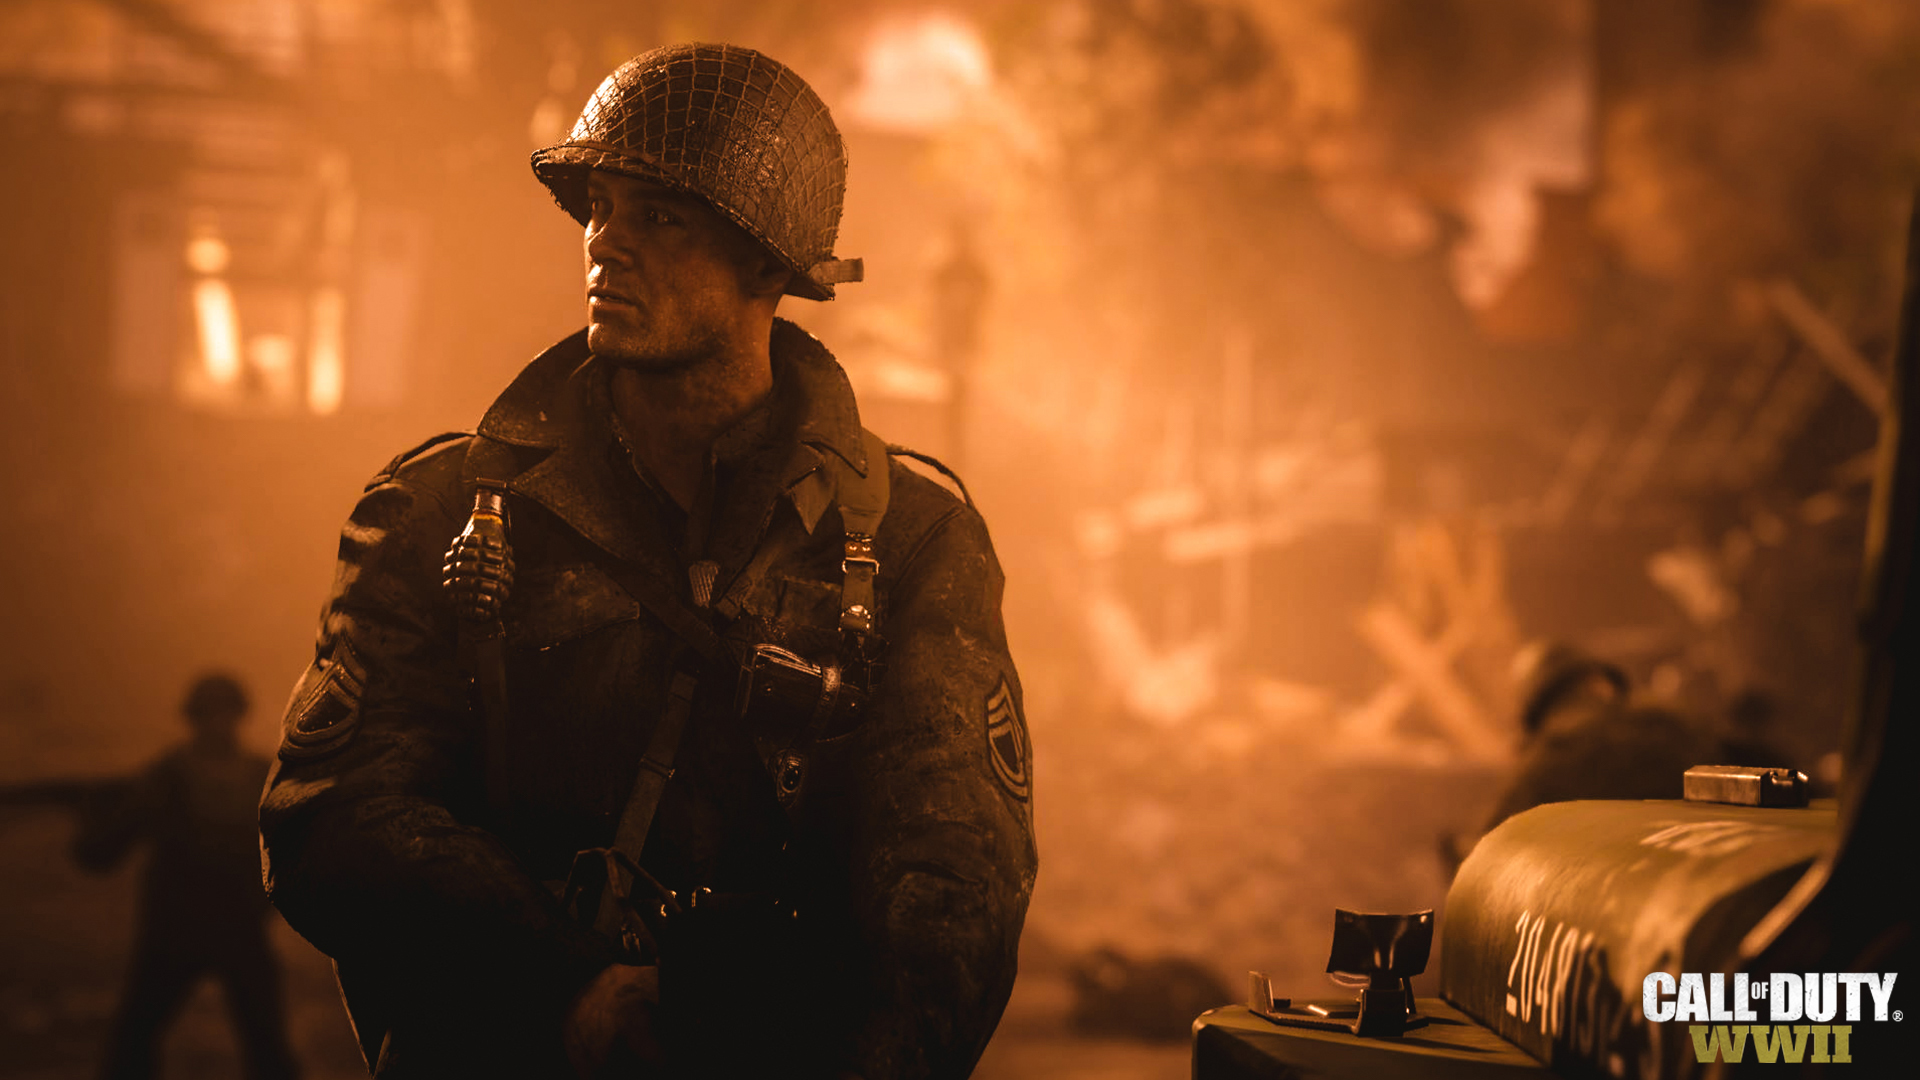 Call of Duty: WWII announced with new trailer